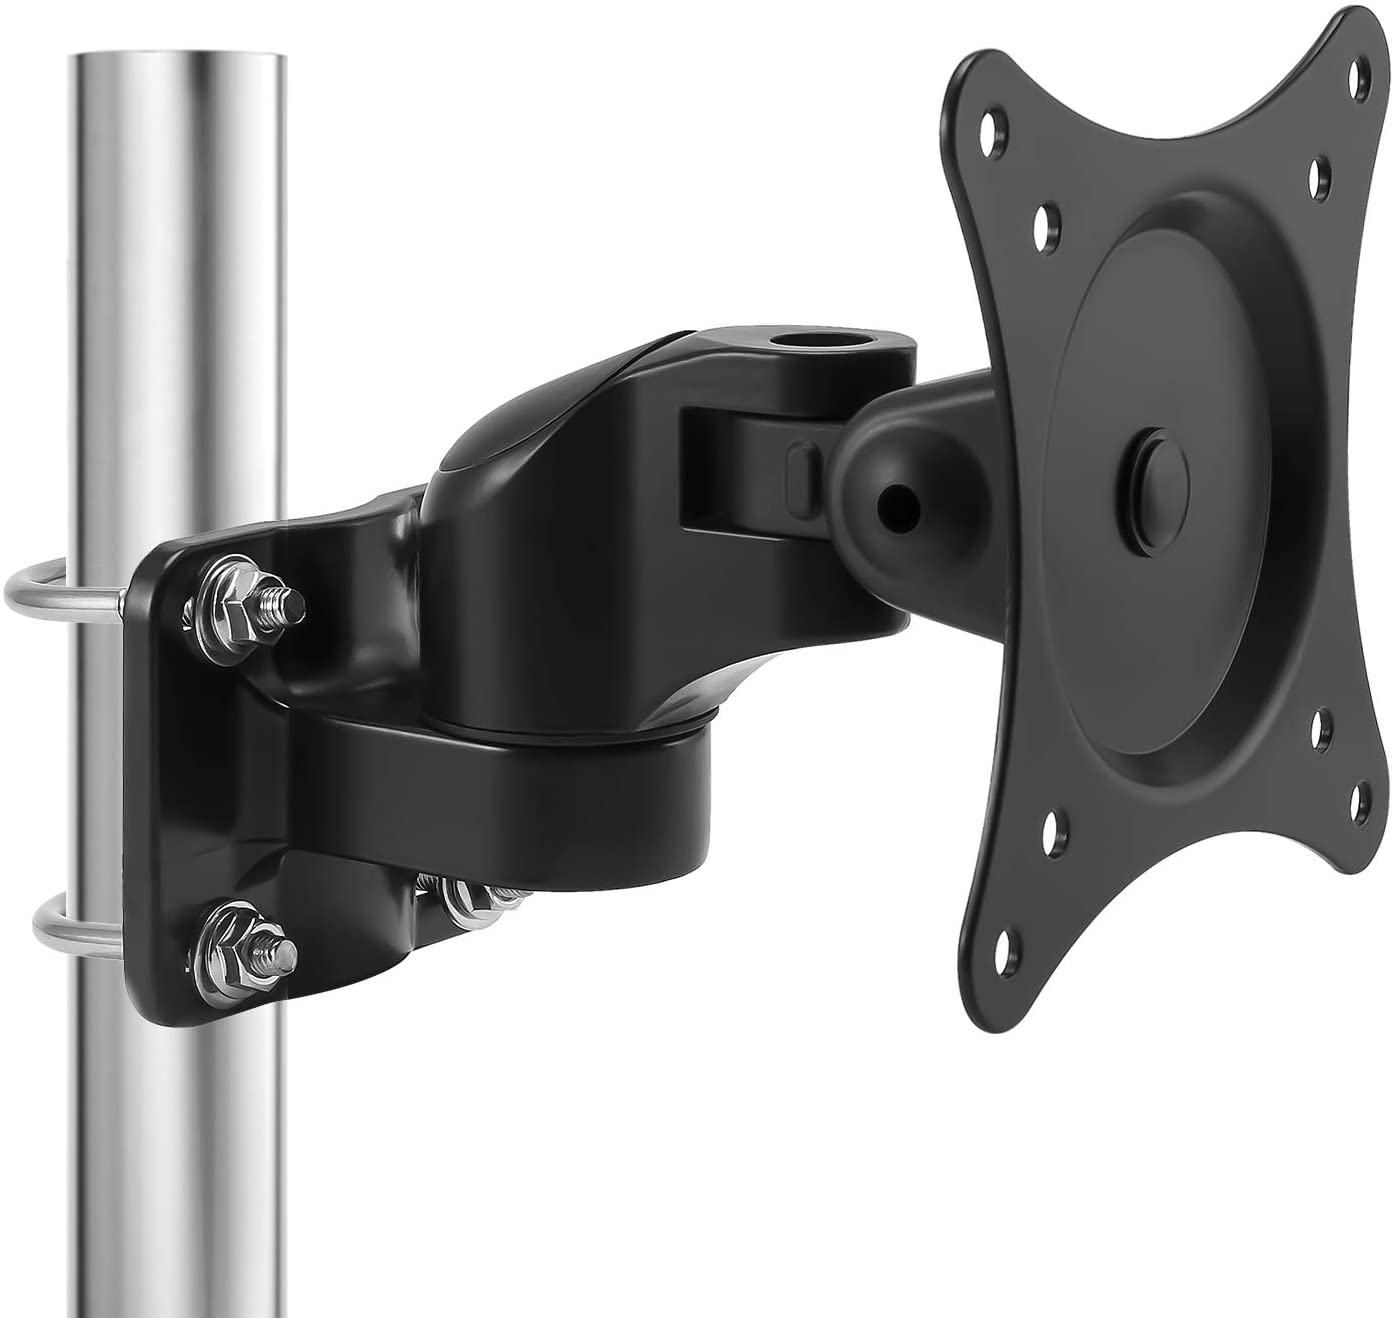 Loutytuo Universal Monitor Pole Mount Bracket Without Punching Fully Adjustable Stand for Diameter Pole Mount with VESA 75/100, Fits Screen up to 27 inch